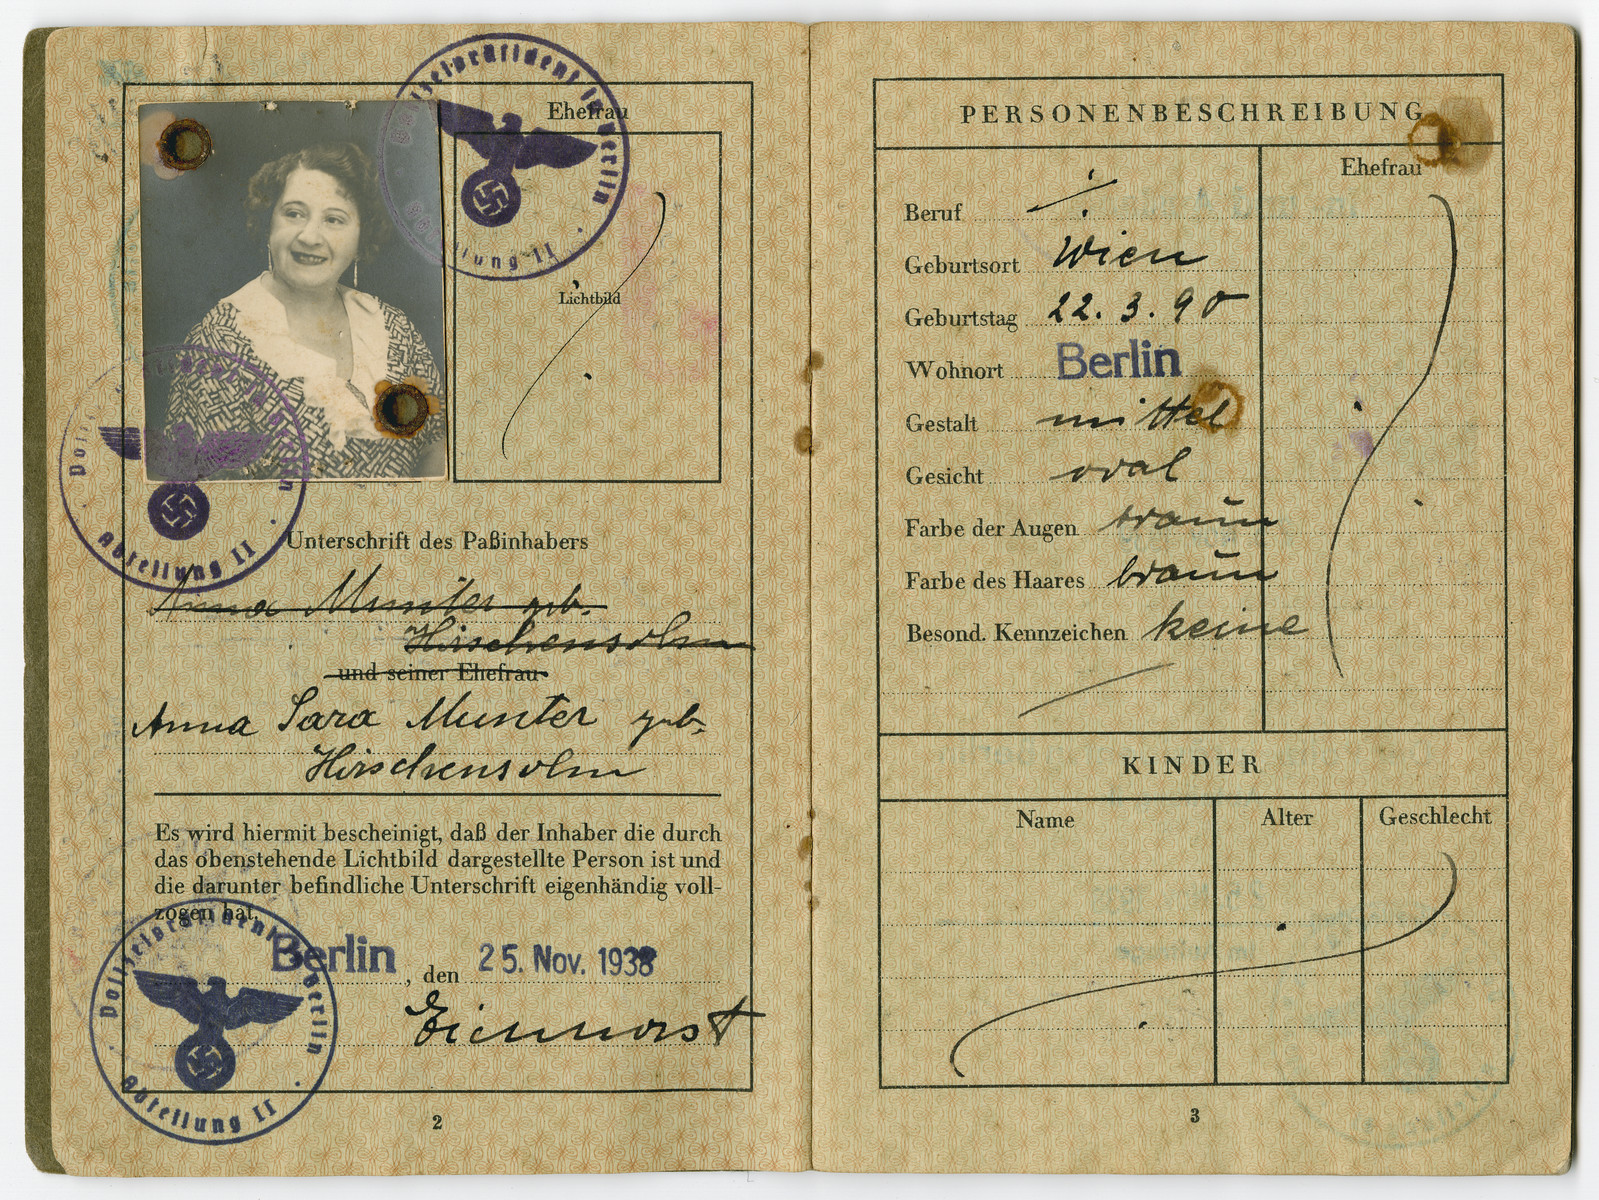 Anna Hirschensohn Alexander German passport showing her forced name change to include the middle name of Sara.  The Jews were not allowed to have Aryan names on their passports, so all of the boys were named Israel and the girls were Sara.